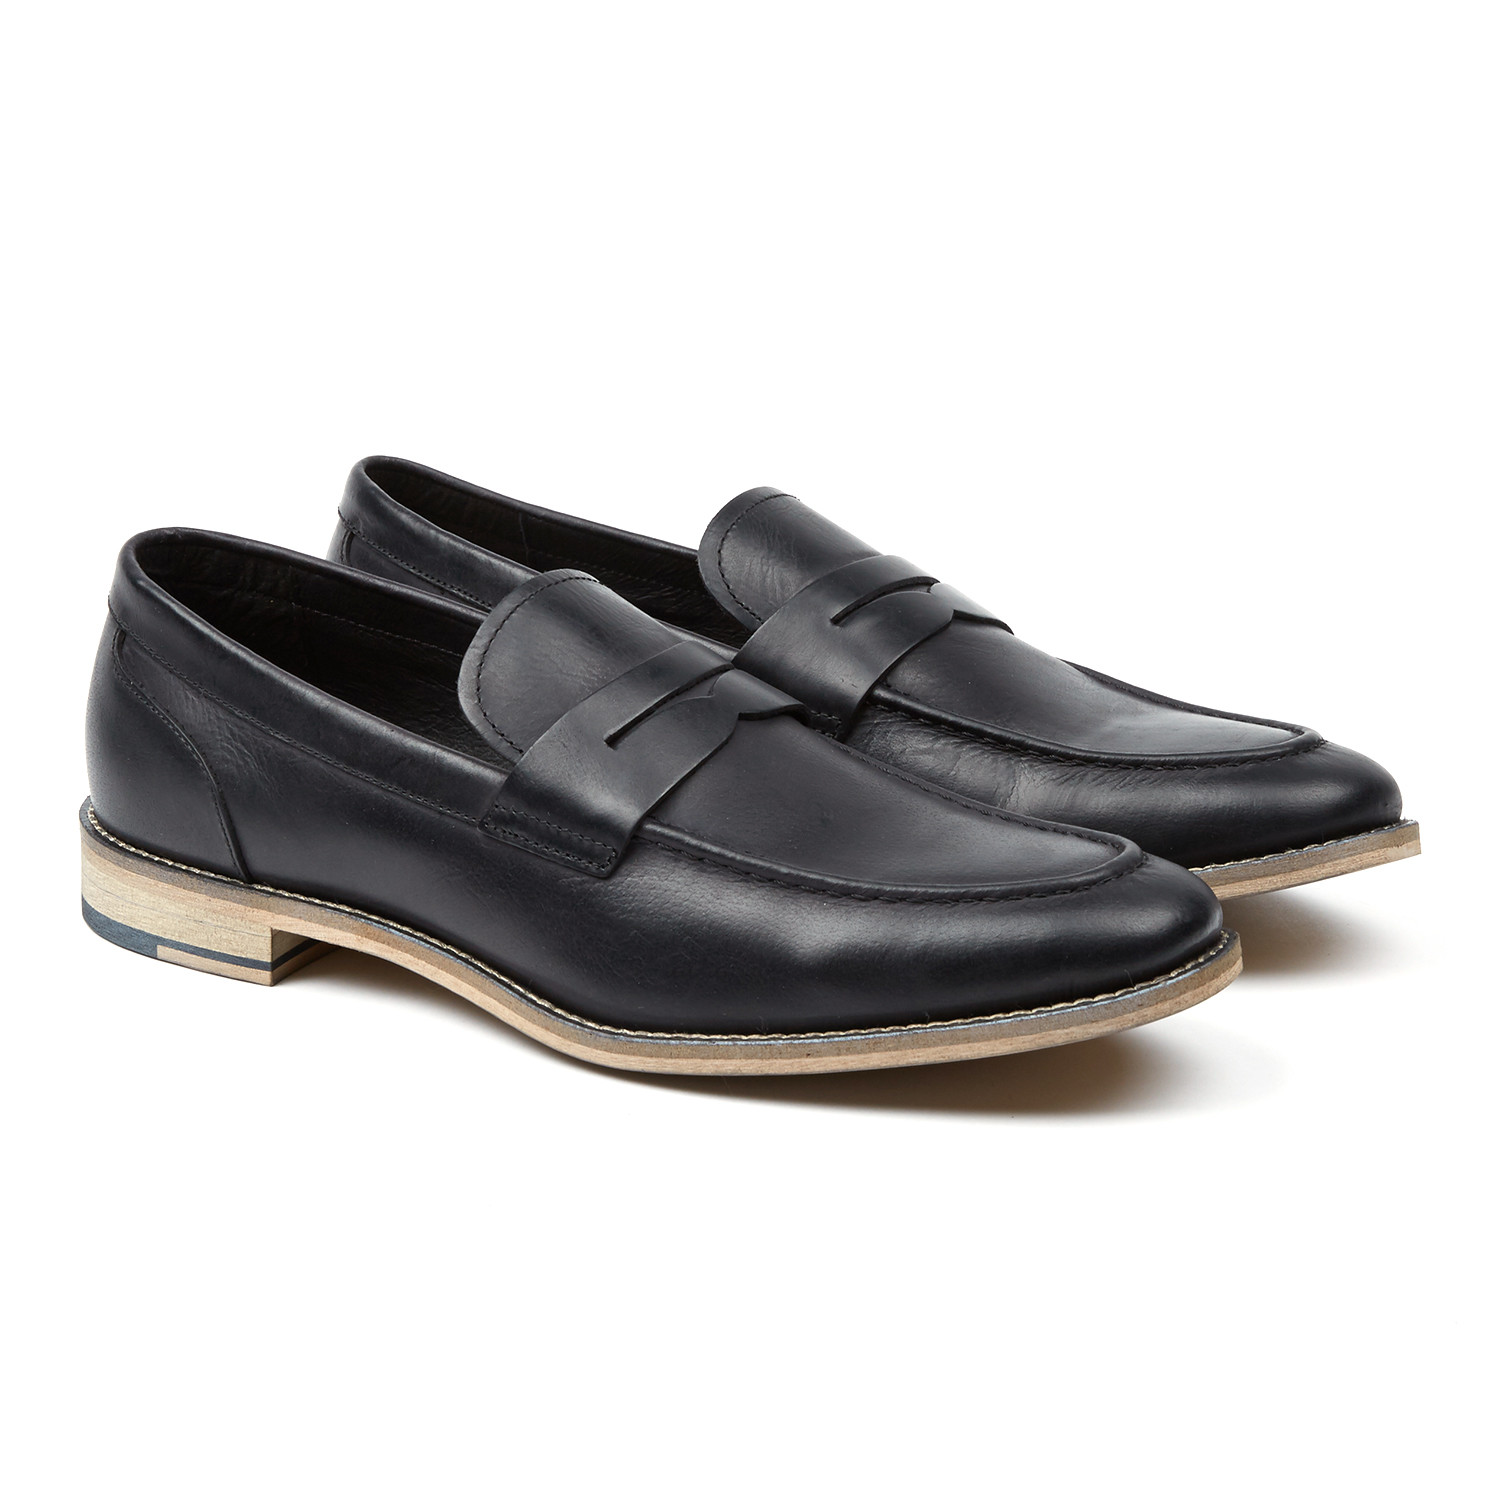 5f20baaf633 Clark Suede Penny Loafer    Black (US  7) - Rush By Gordon Rush ...